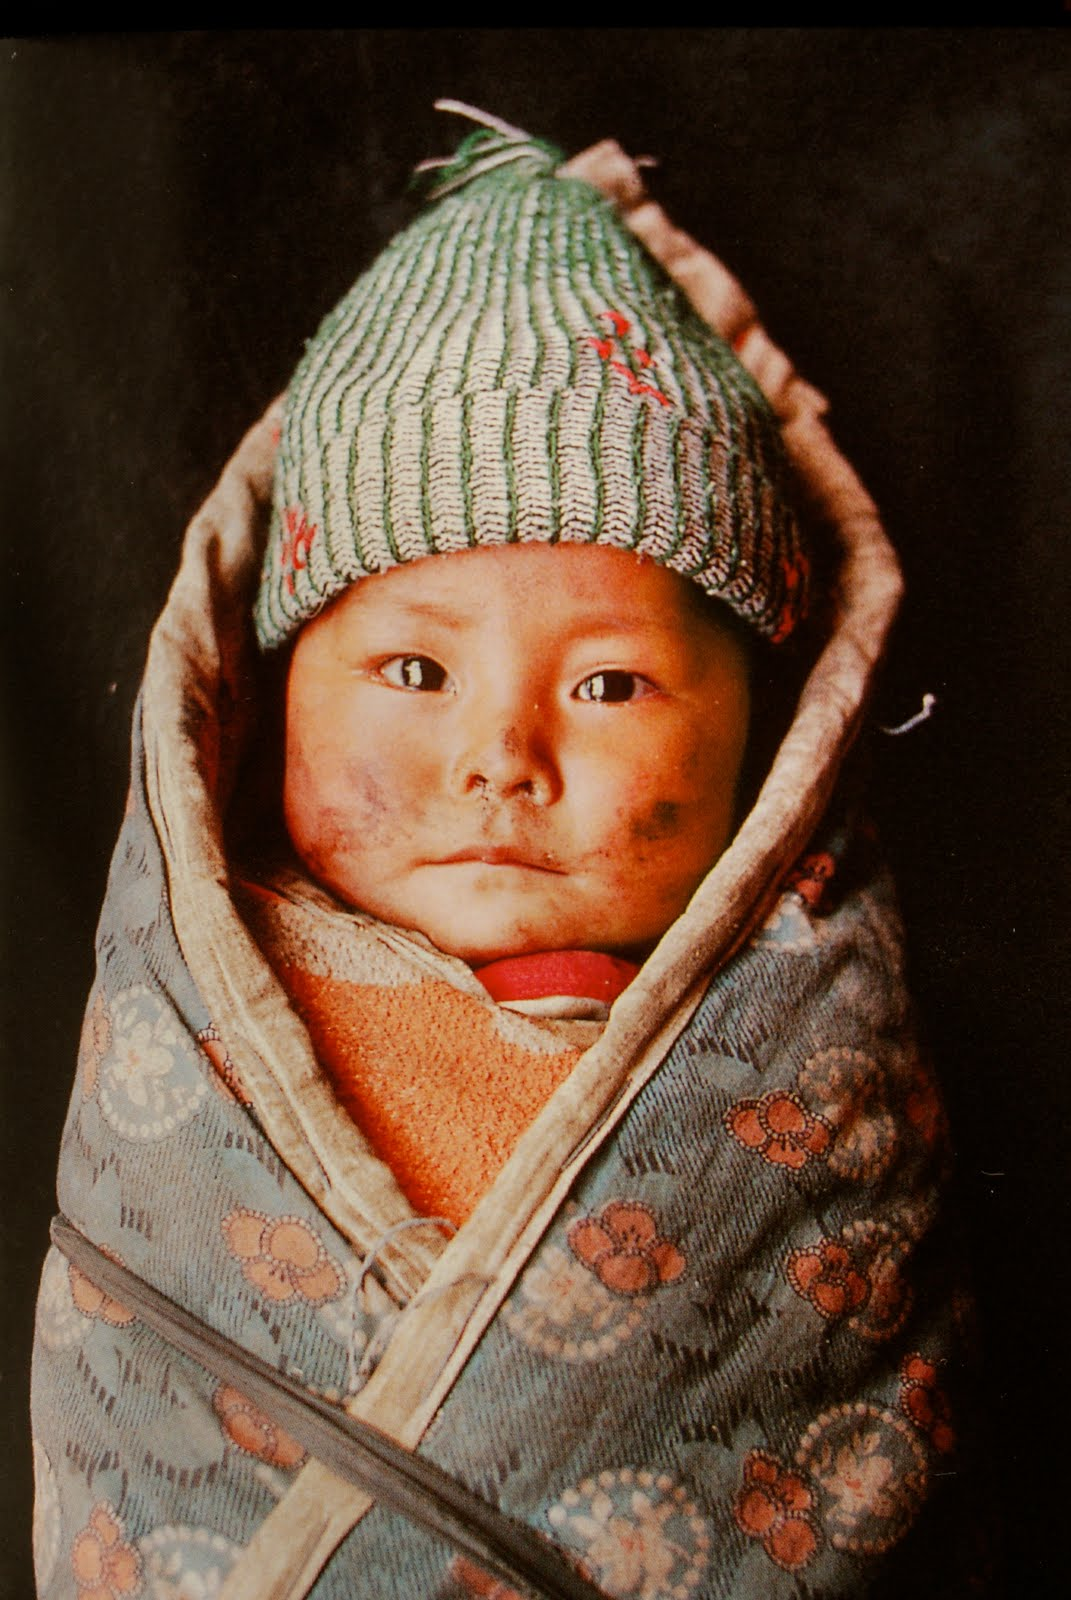 The Other Day I Bought A Book Called Portraits By Steve McCurry Link Obviously Is Full Of And WOW They Are Stunning